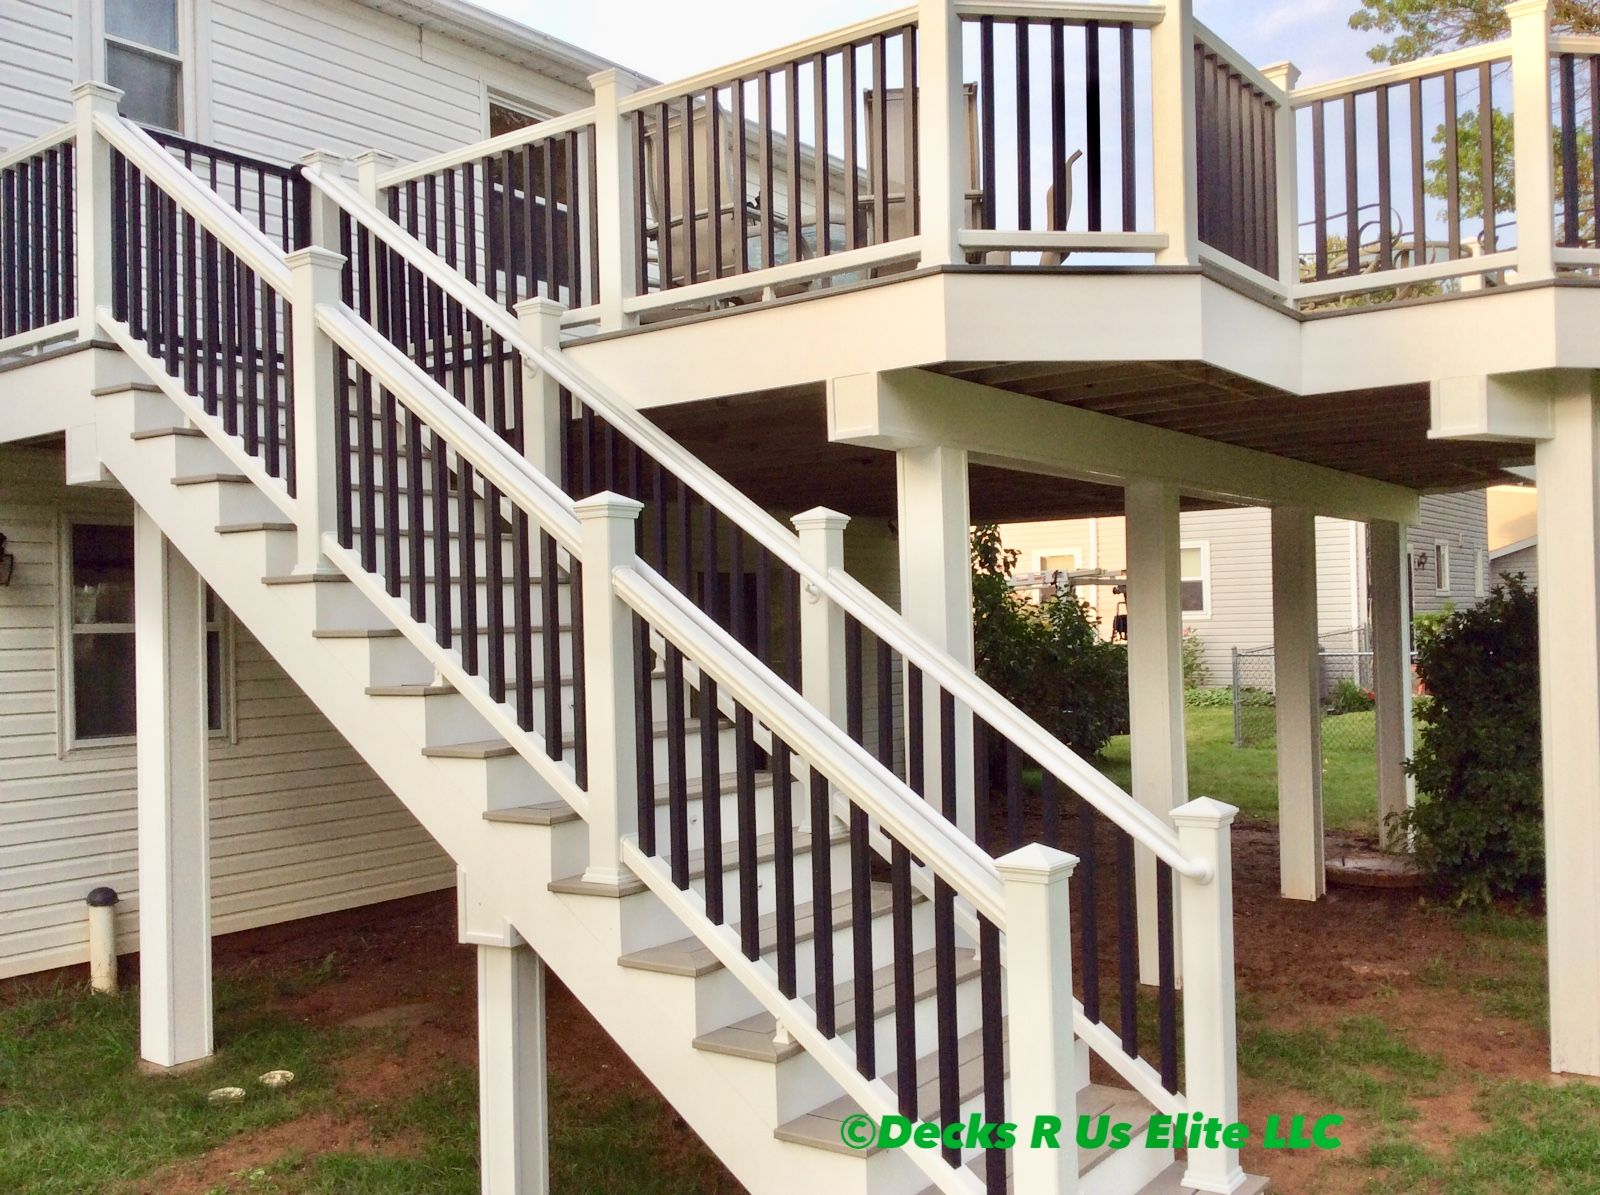 Gravel Path Step Treads With White And Black Trex Transcends Railing And All White Trex Fascia And Wrap Trex Deck Trex Fascia Backyard